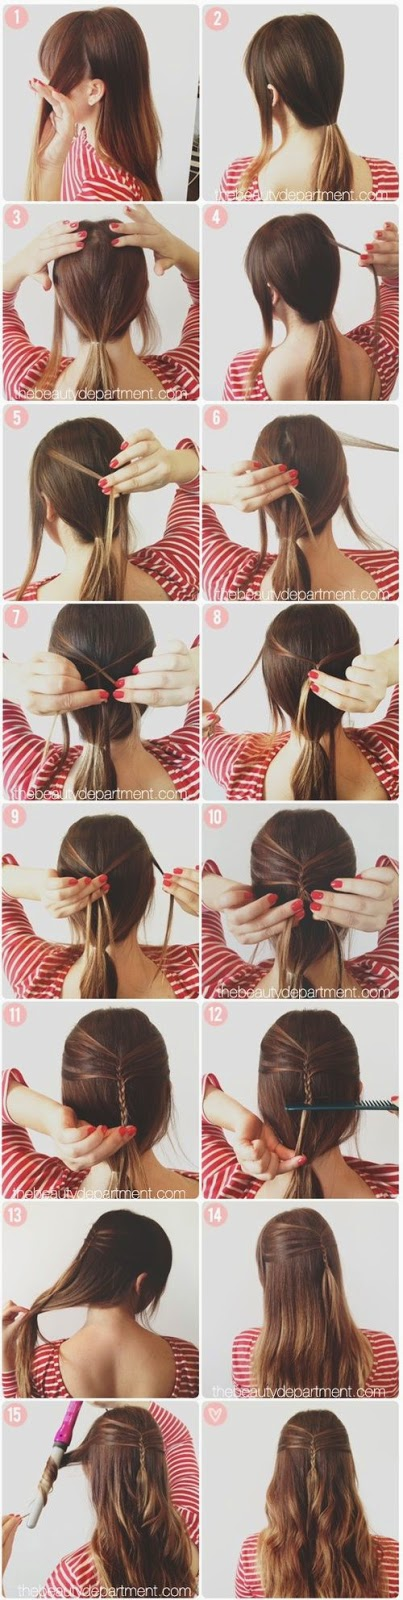 Hairstyles Tutorials Step By Step